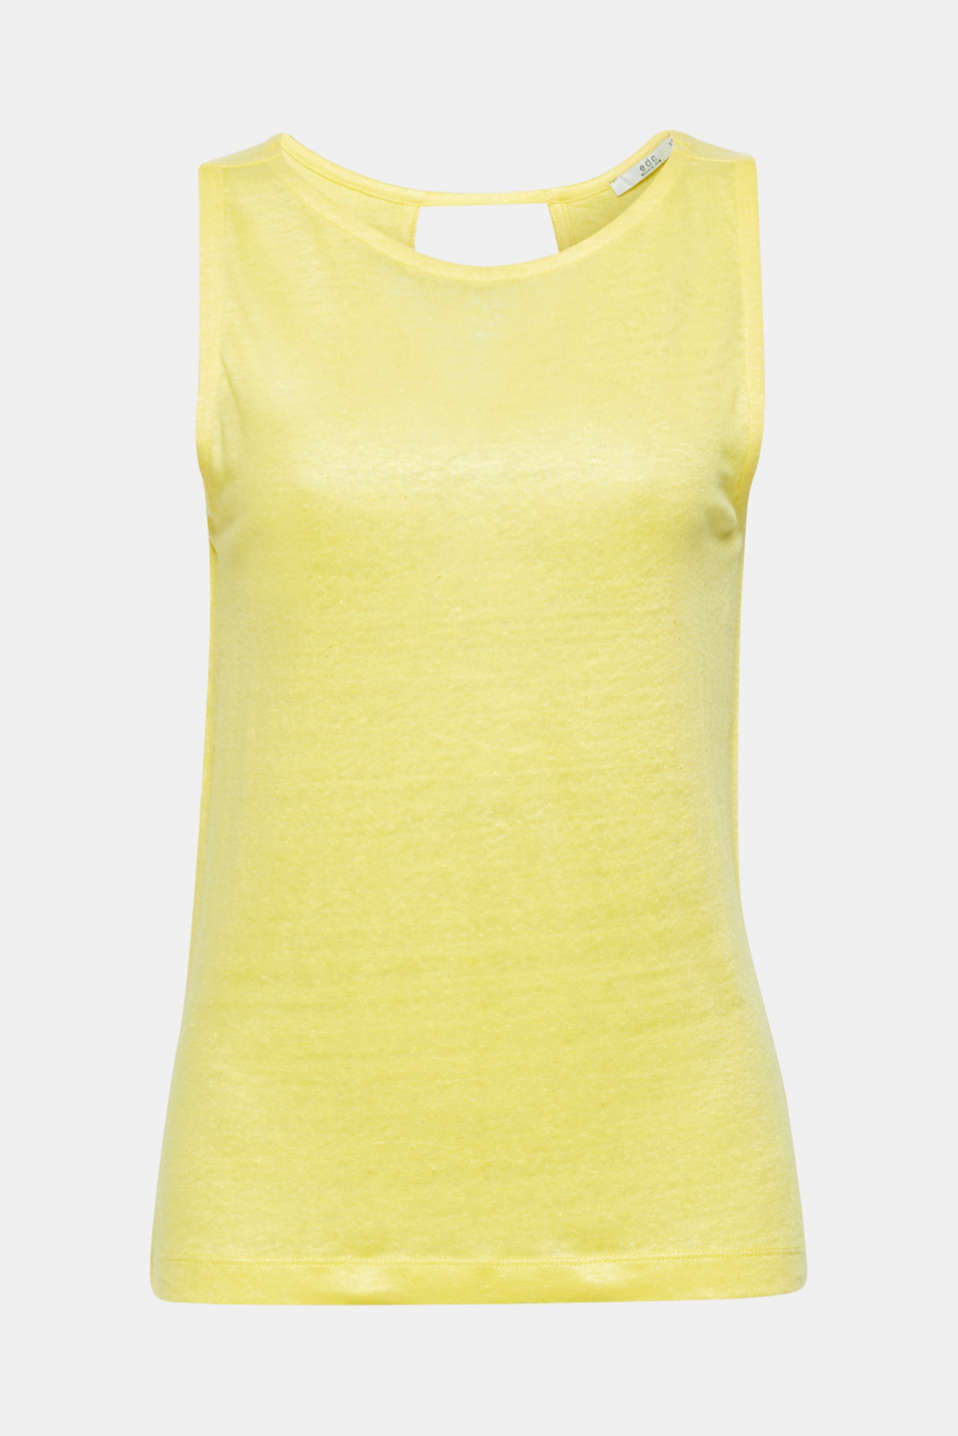 Vest with a cut out, made of 100% linen, BRIGHT YELLOW, detail image number 6